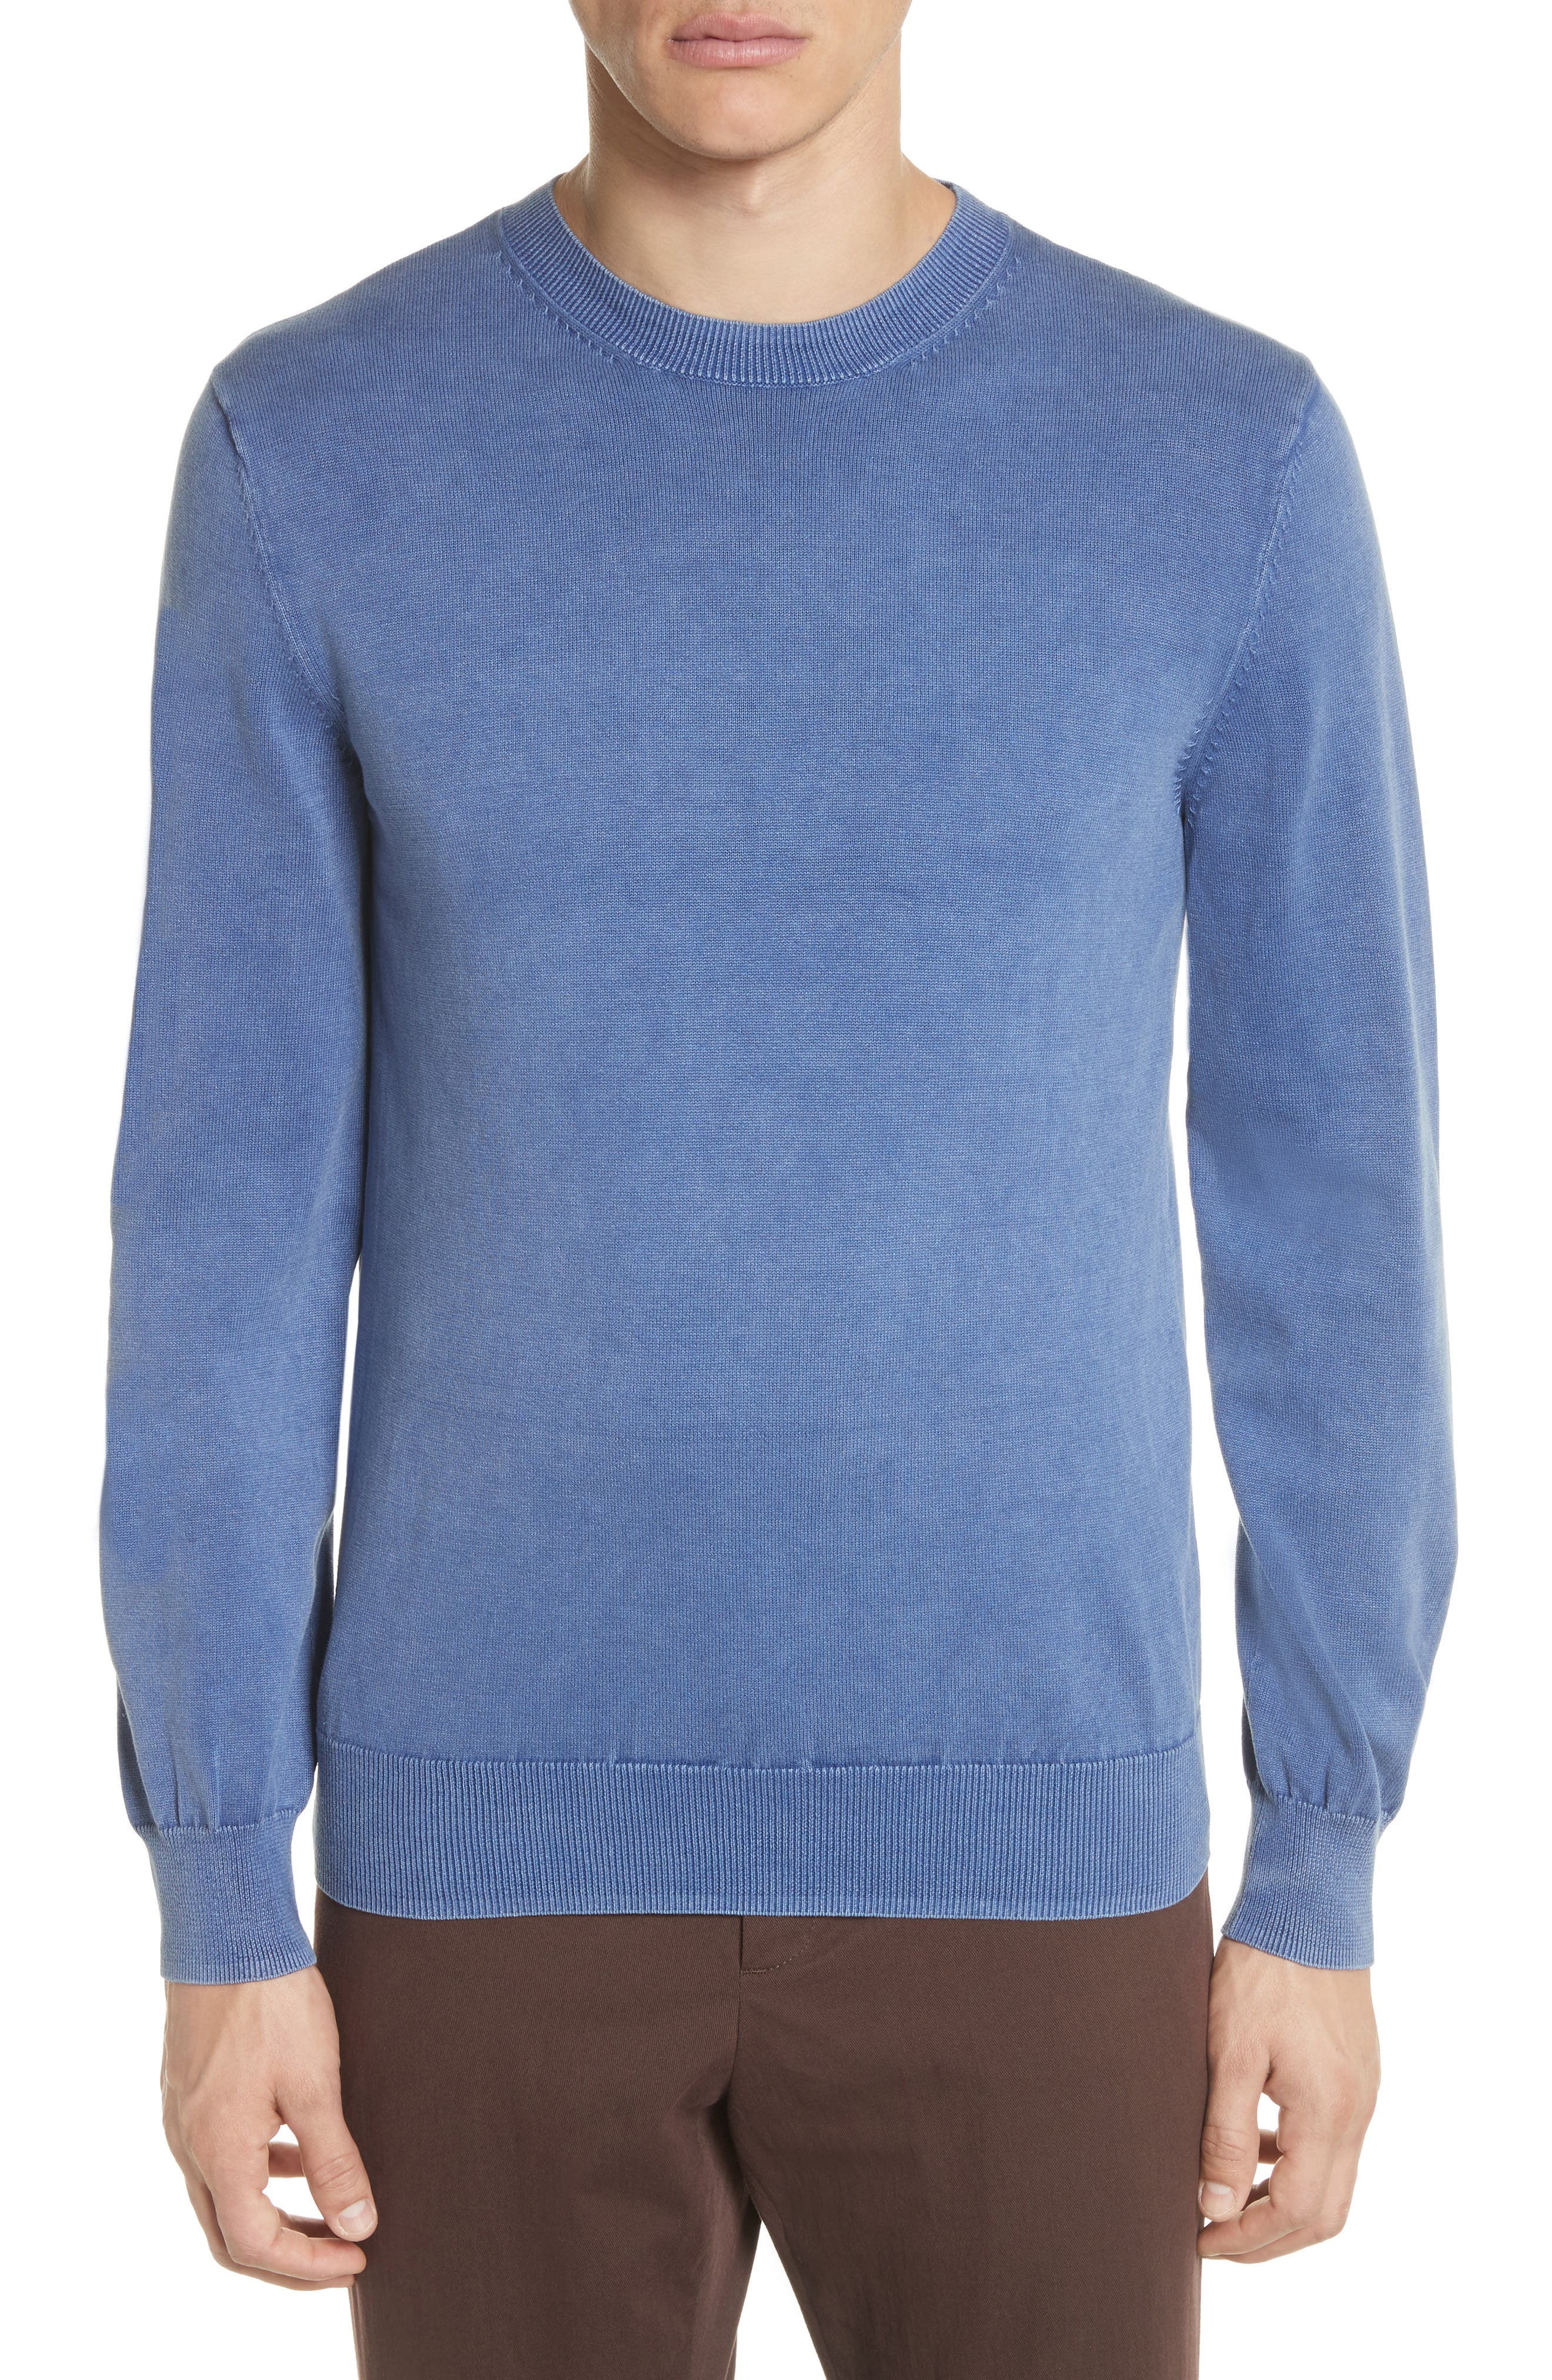 A.P.C. Berry Crewneck Sweater